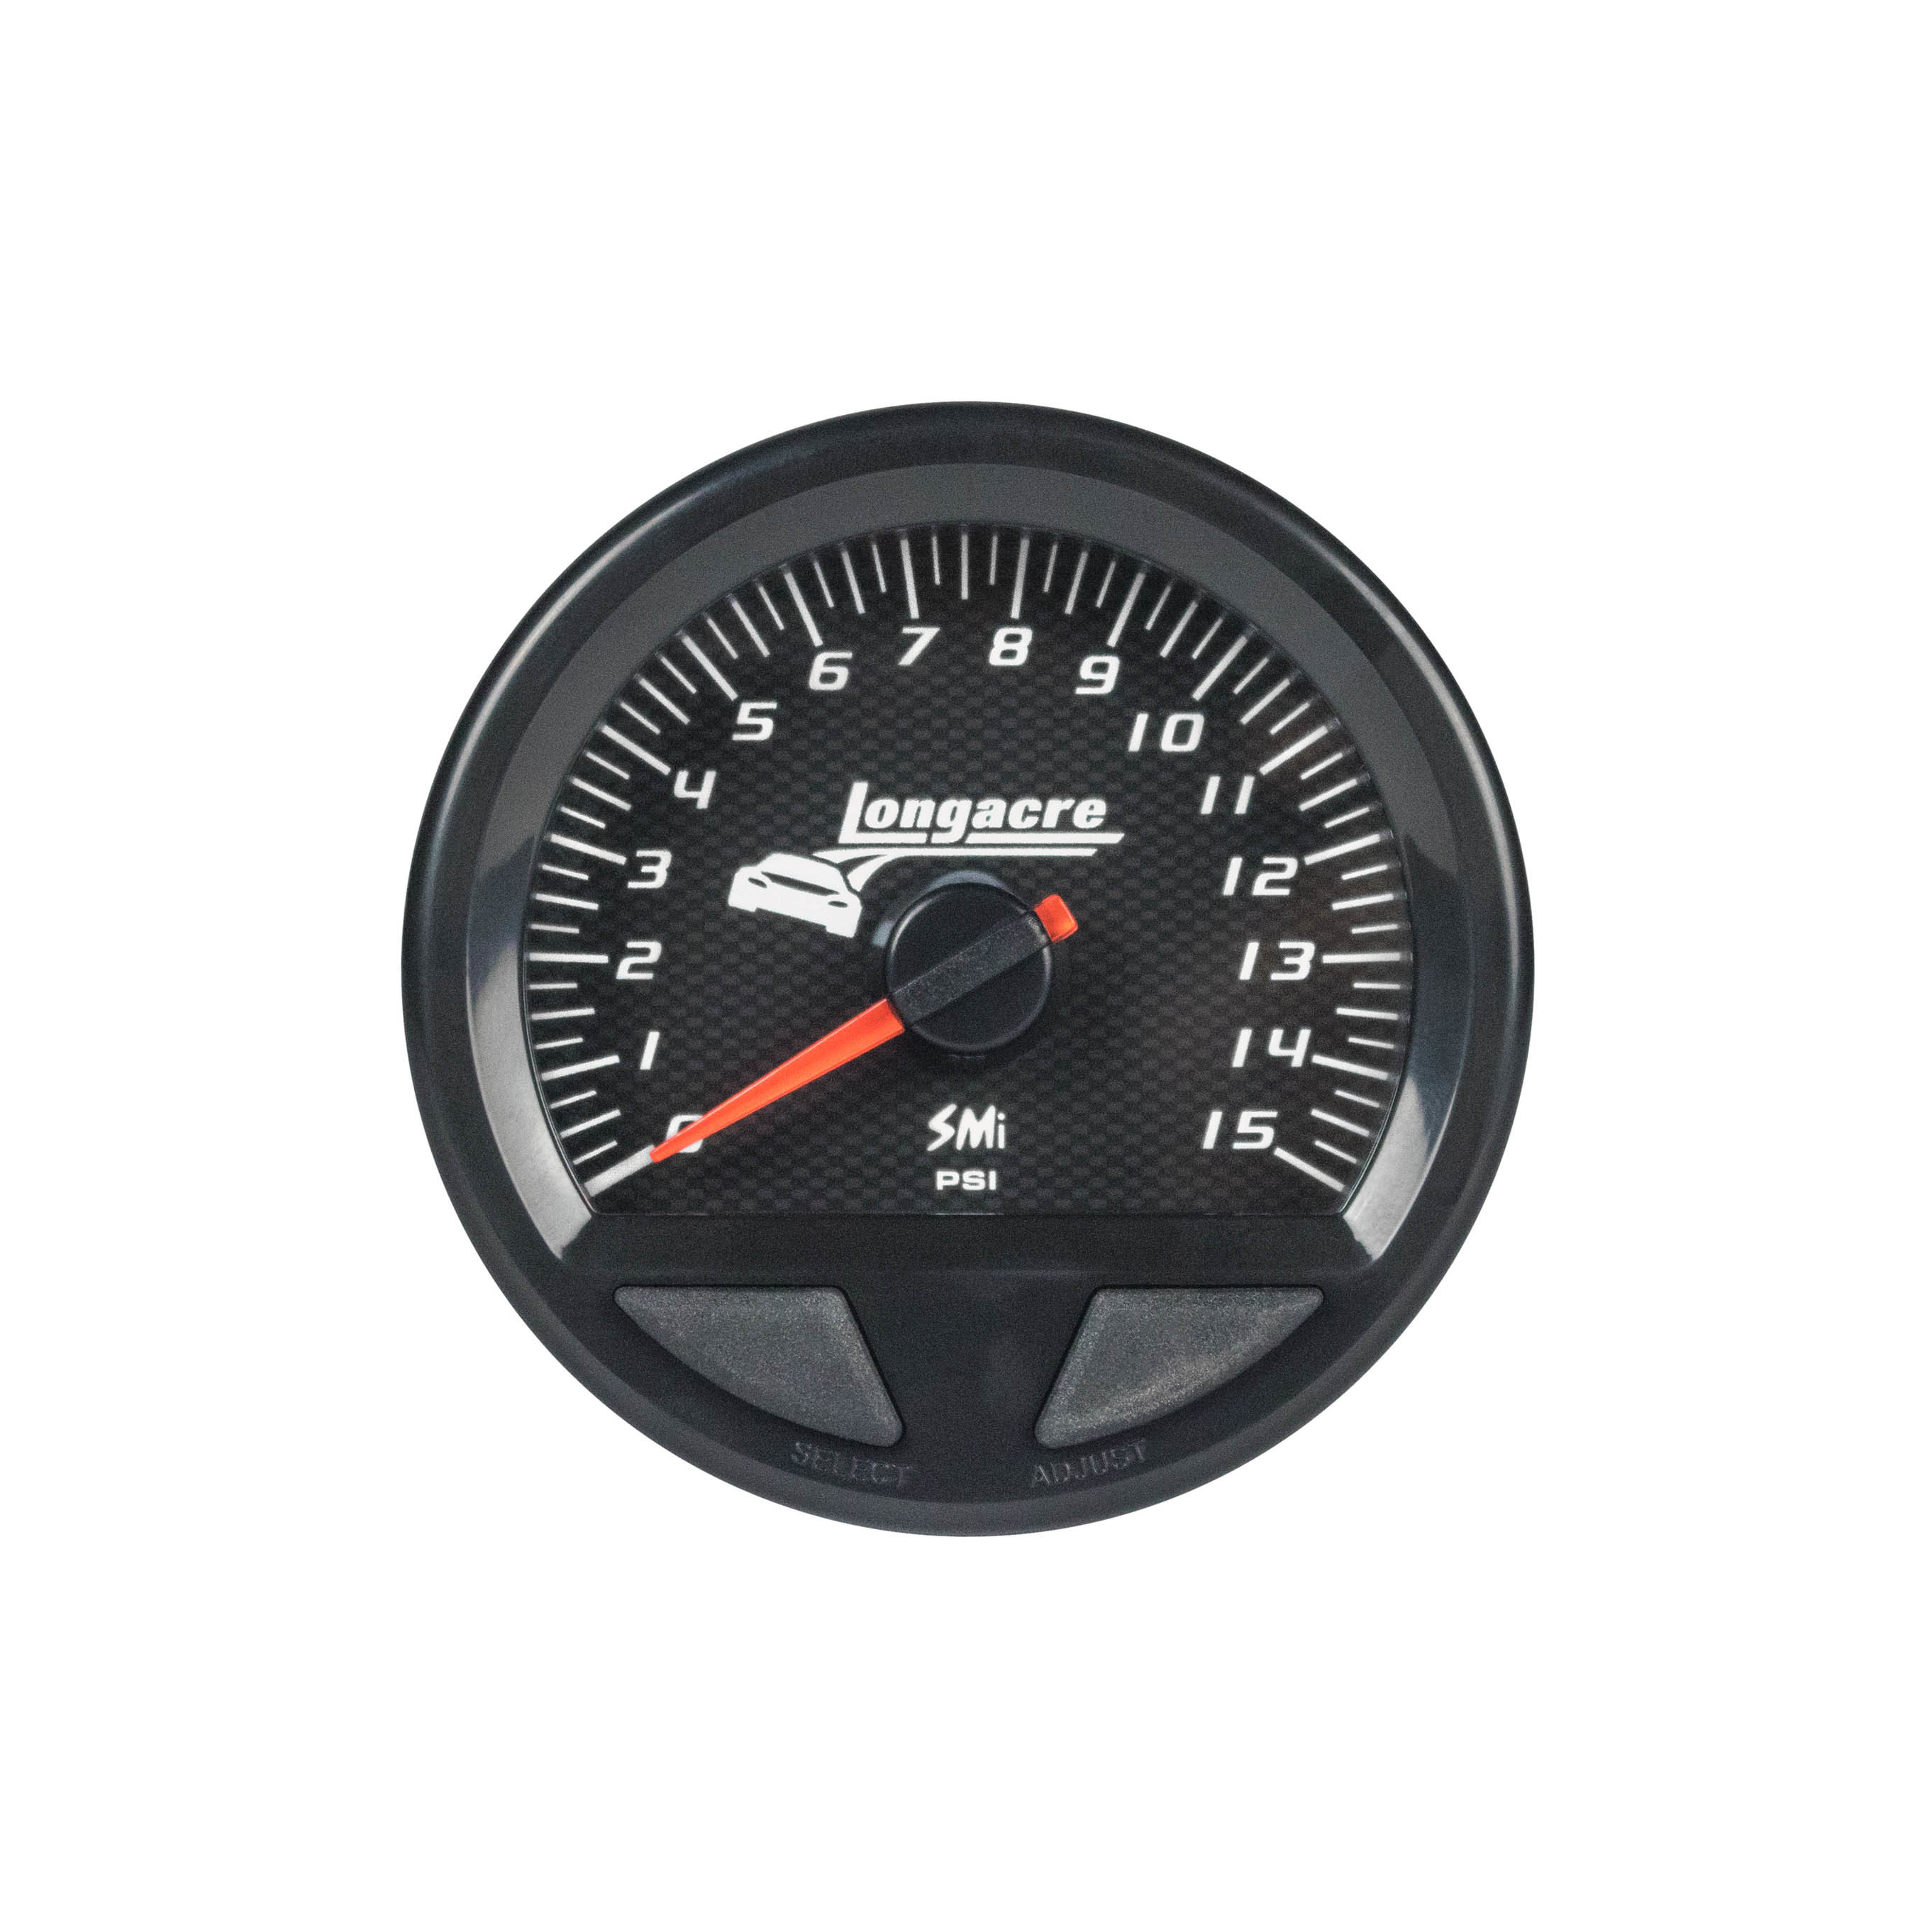 Waterproof SMI Fuel Pressure Gauge 0-15psi